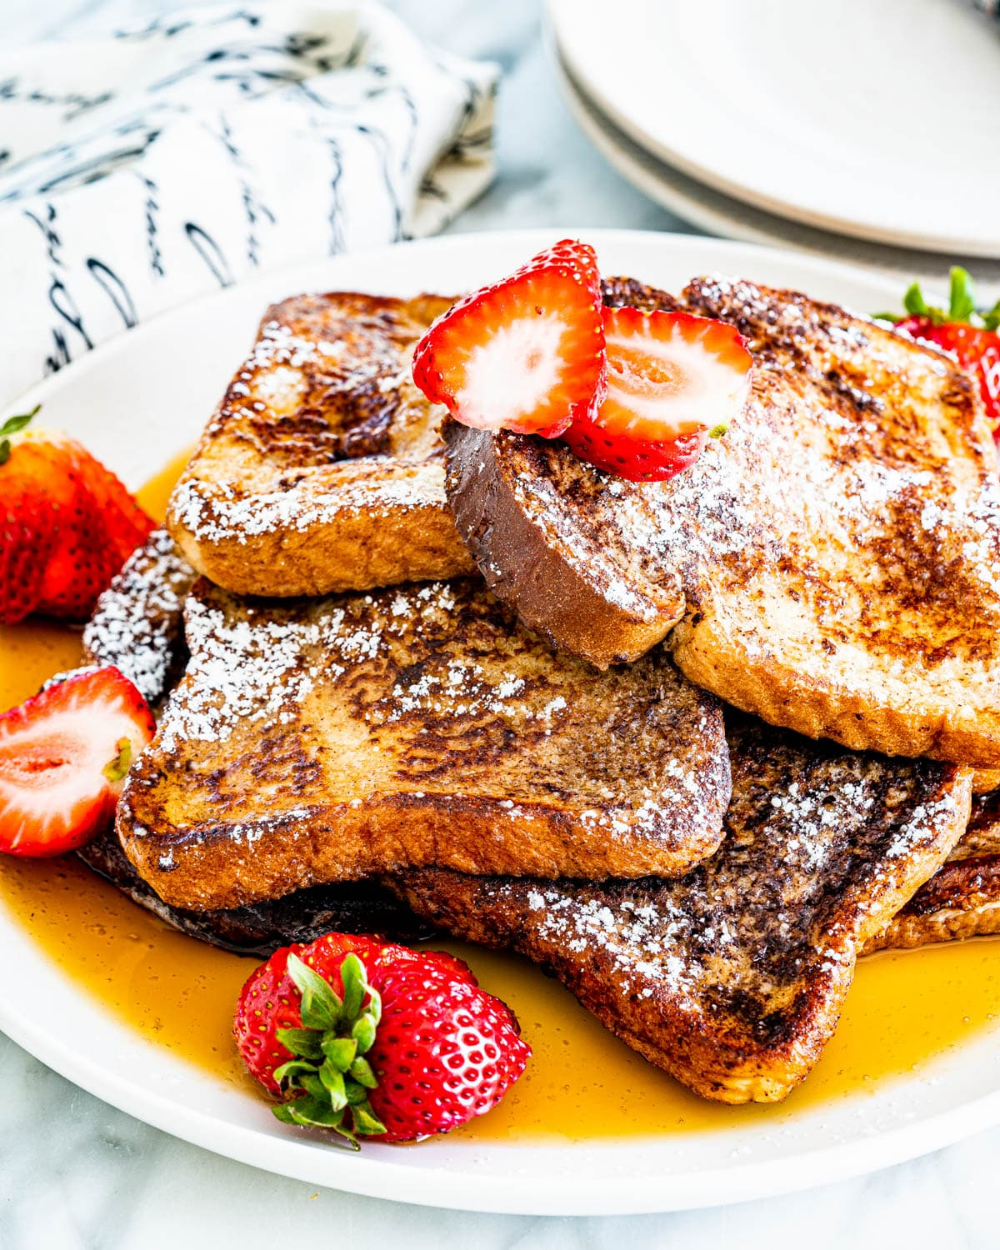 French Toast Featuring Thick Slices Of Bread Soaked In Egg Beaten With Milk And Cinnamon Fried In Butter And Sweet Breakfast Toast French Bread French Toast